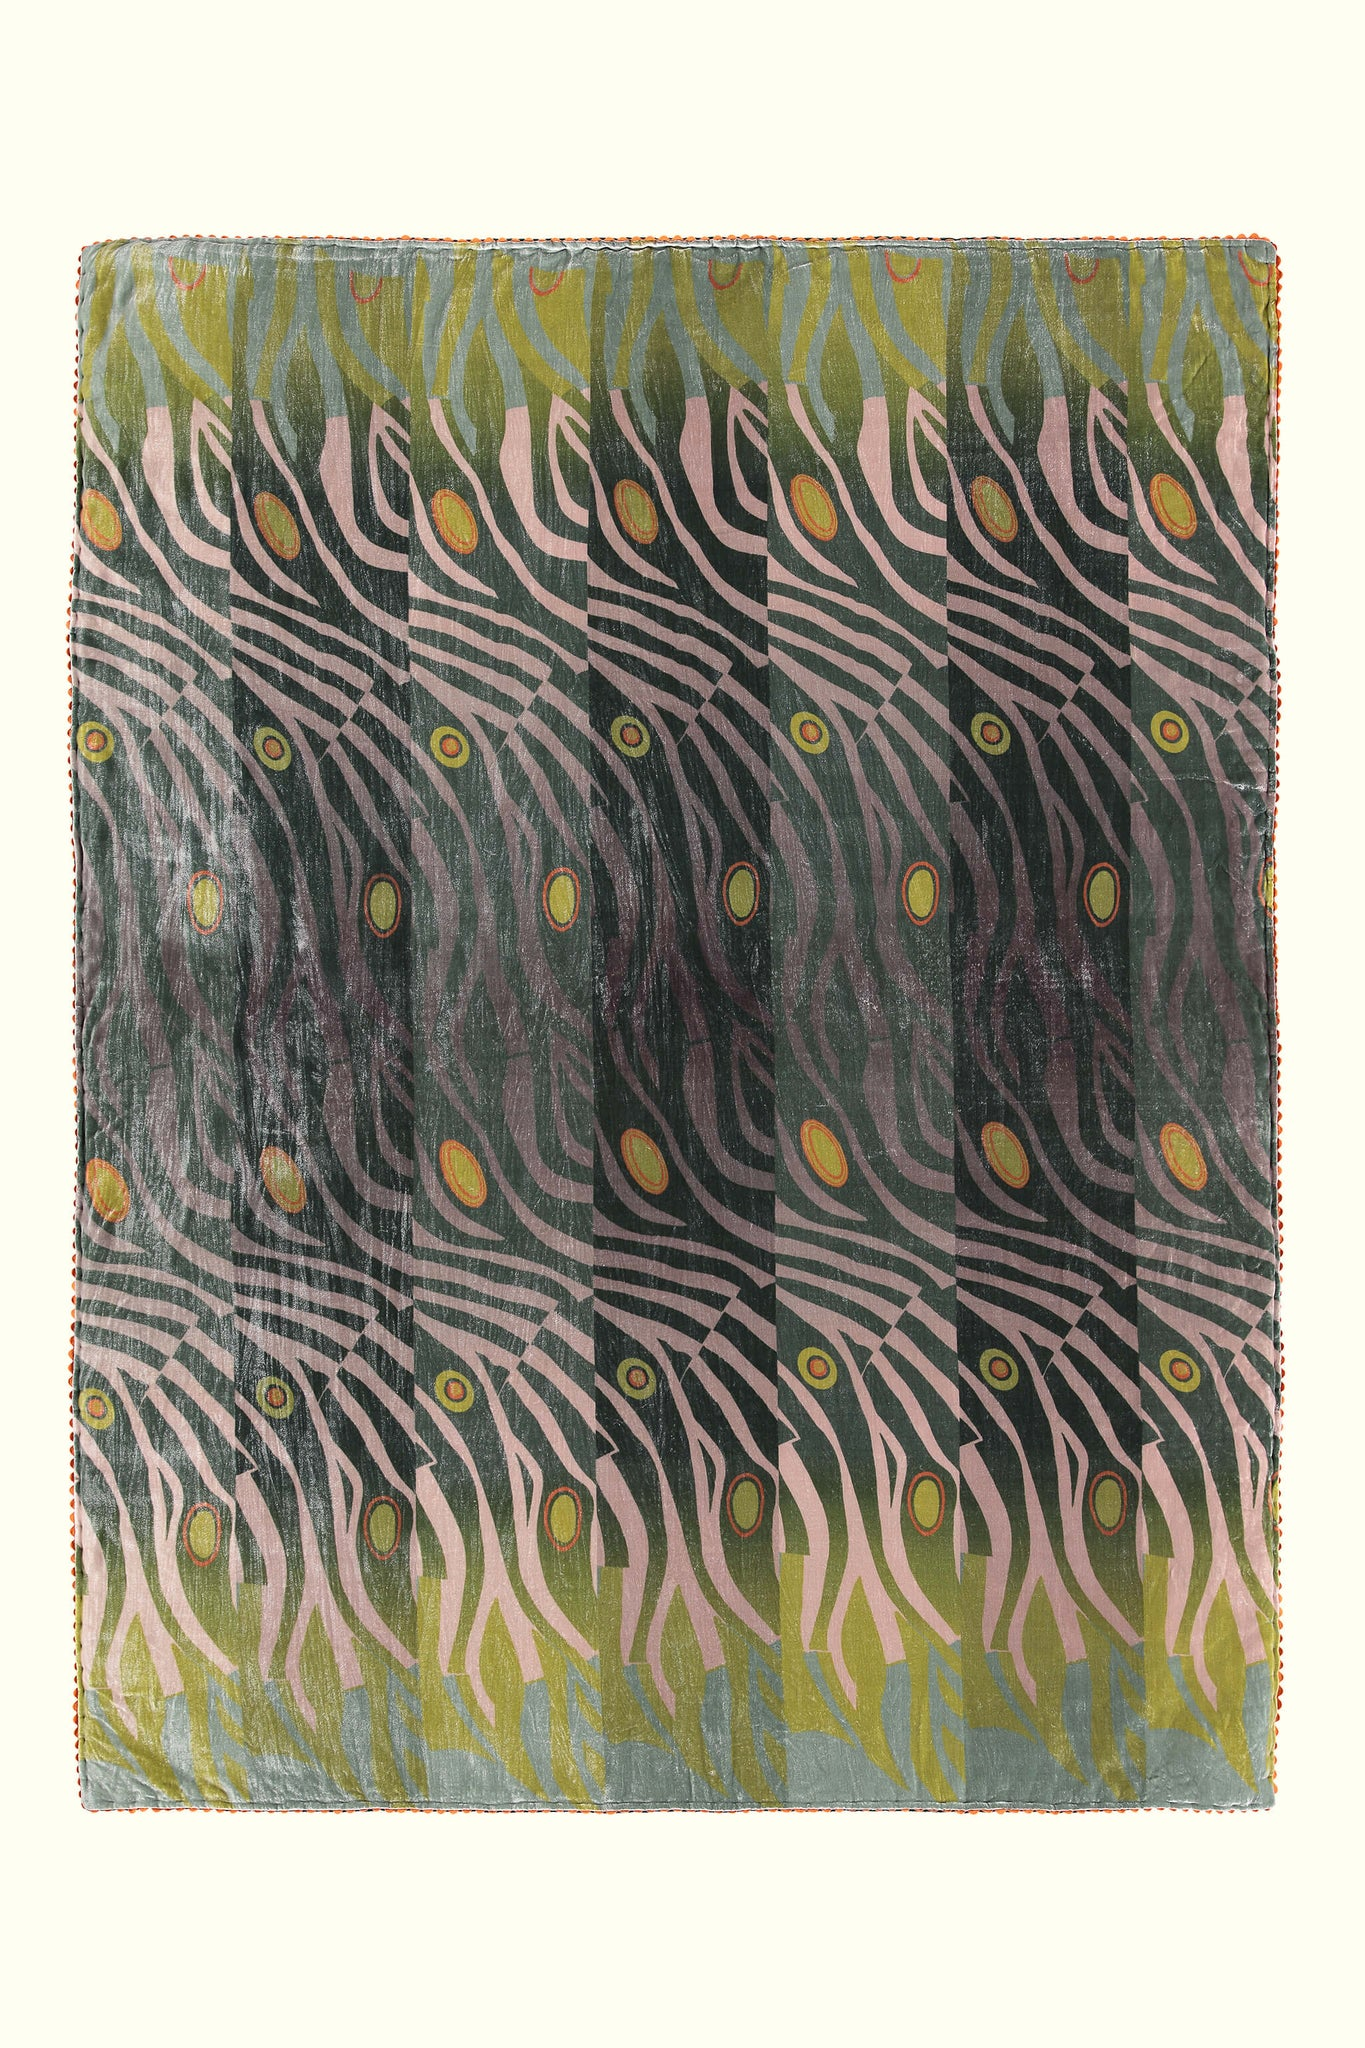 A luxury British silk velvet bed throw by GVE in olive and old rose Dune print design.